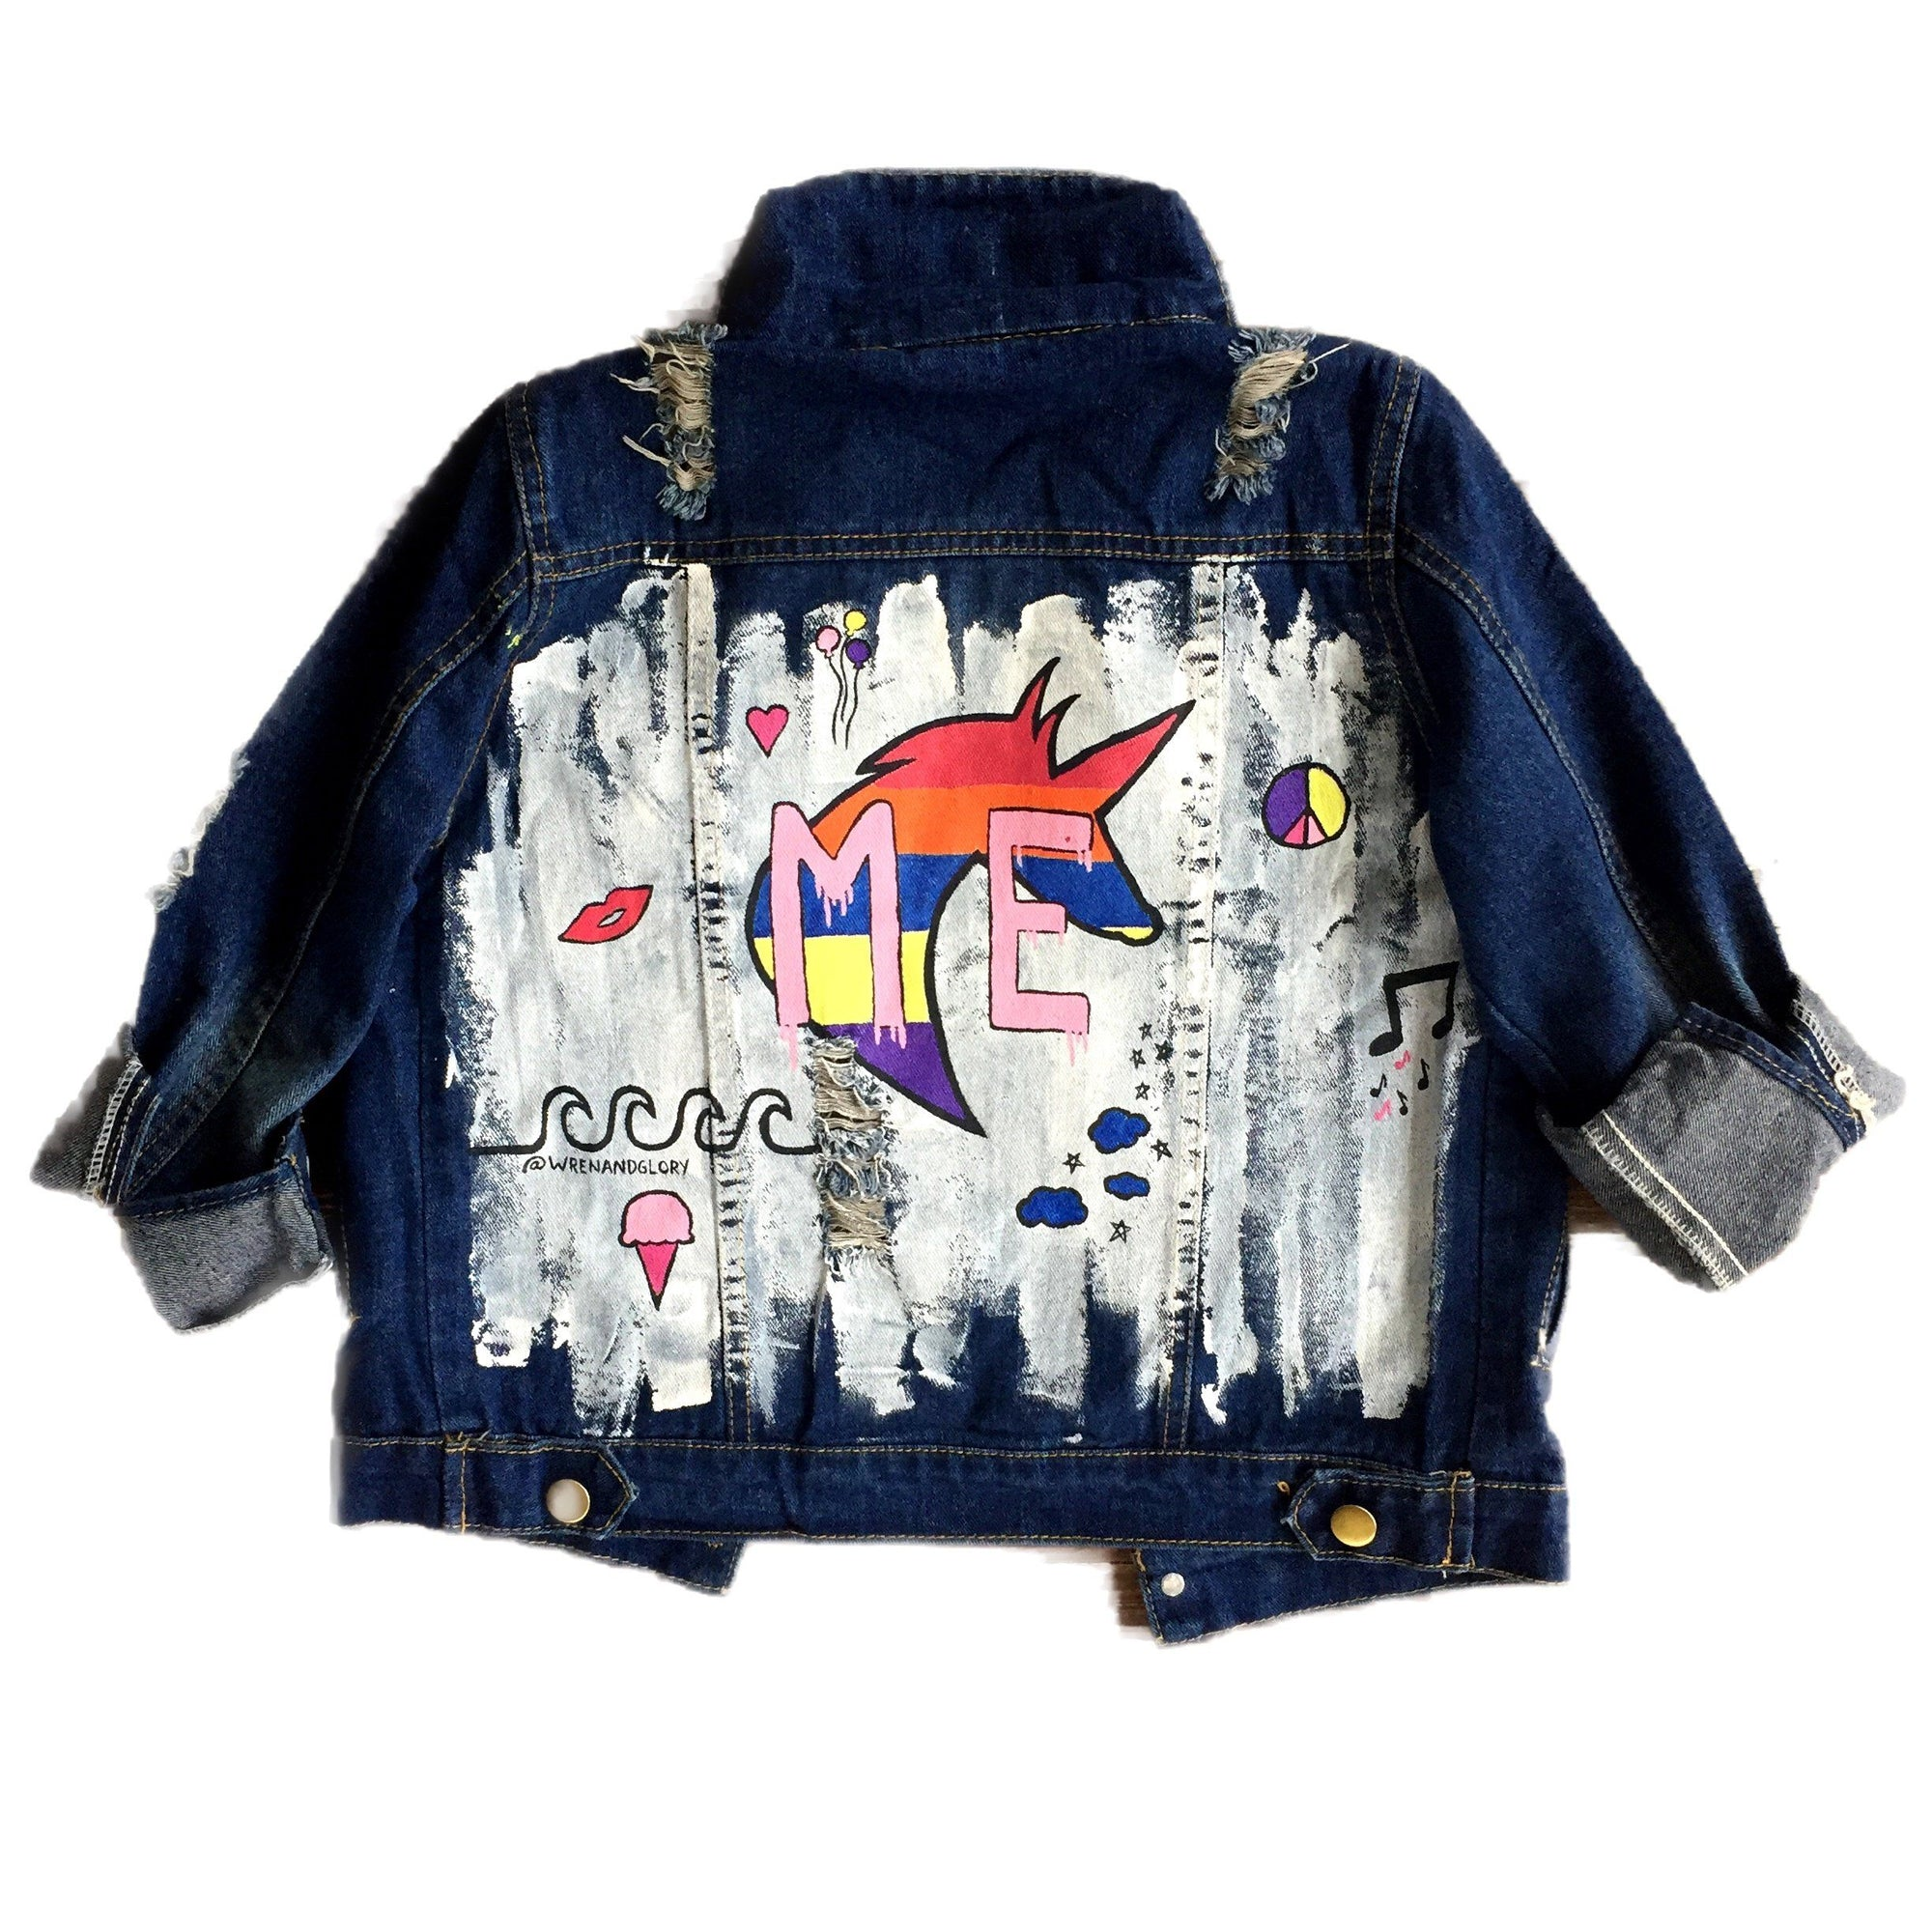 'YOUR INITIALS HERE' DENIM JACKET - Girls